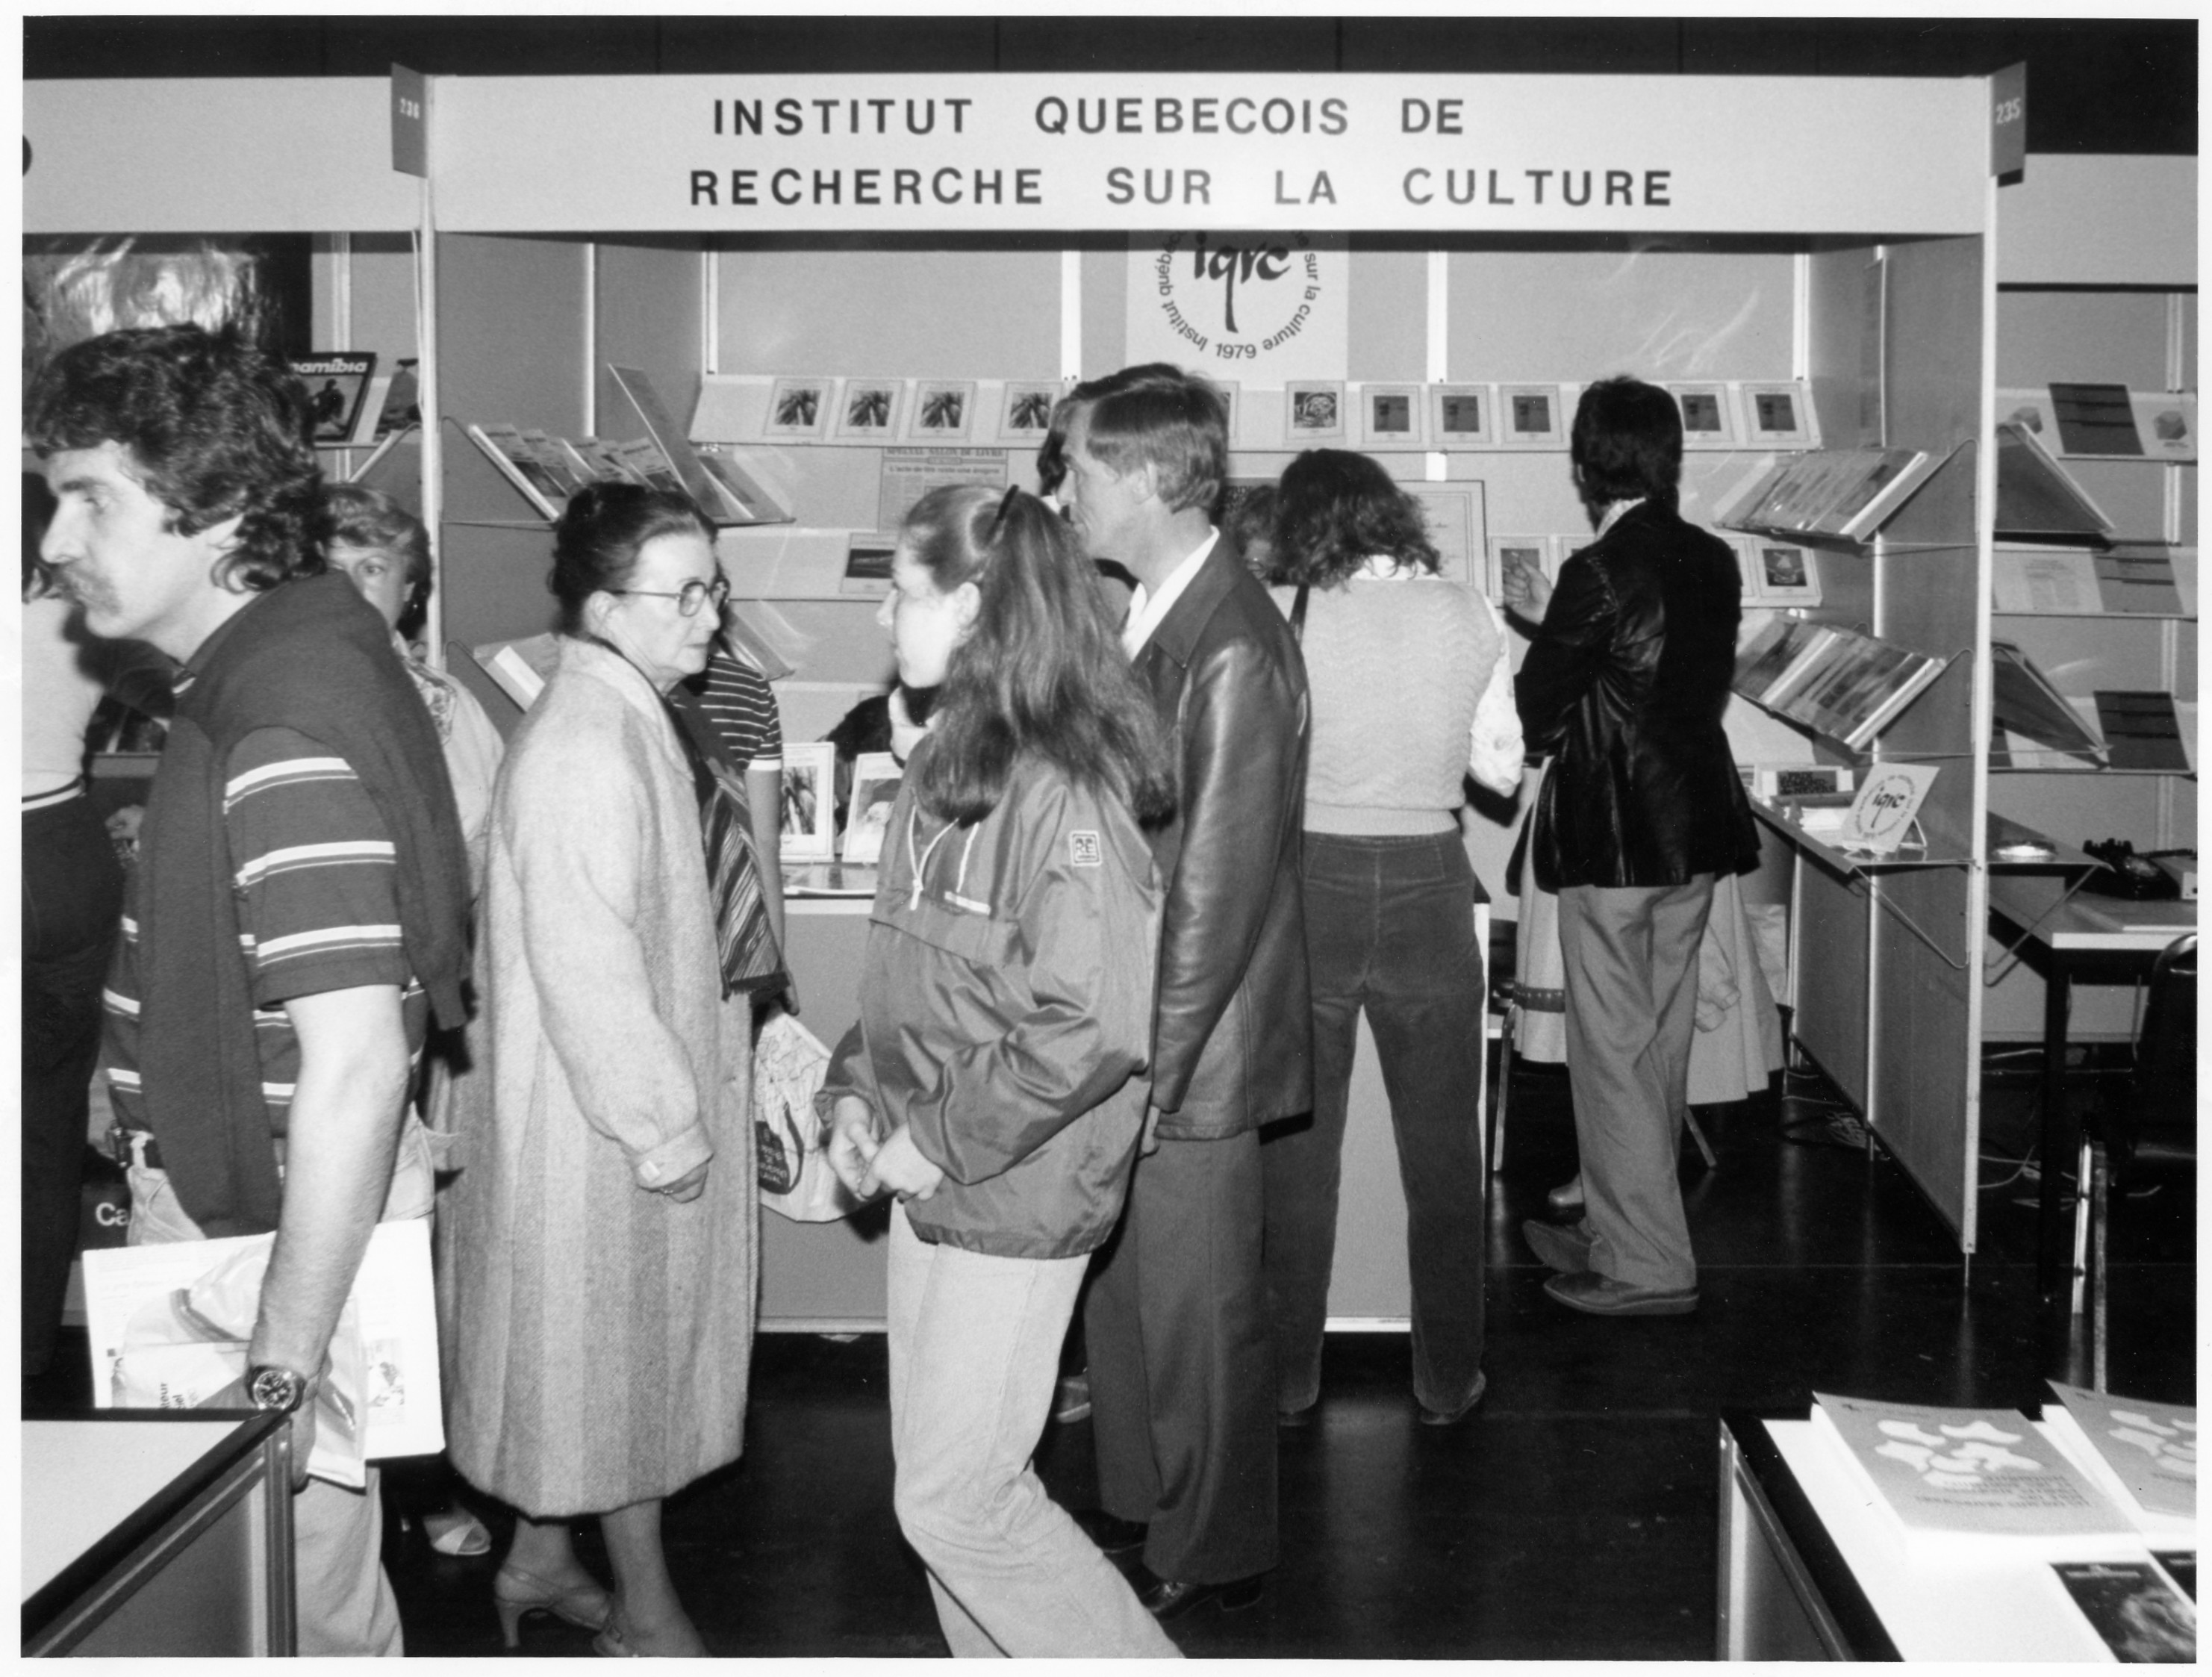 IQRC - Salon du livre de QC - Avril 1982